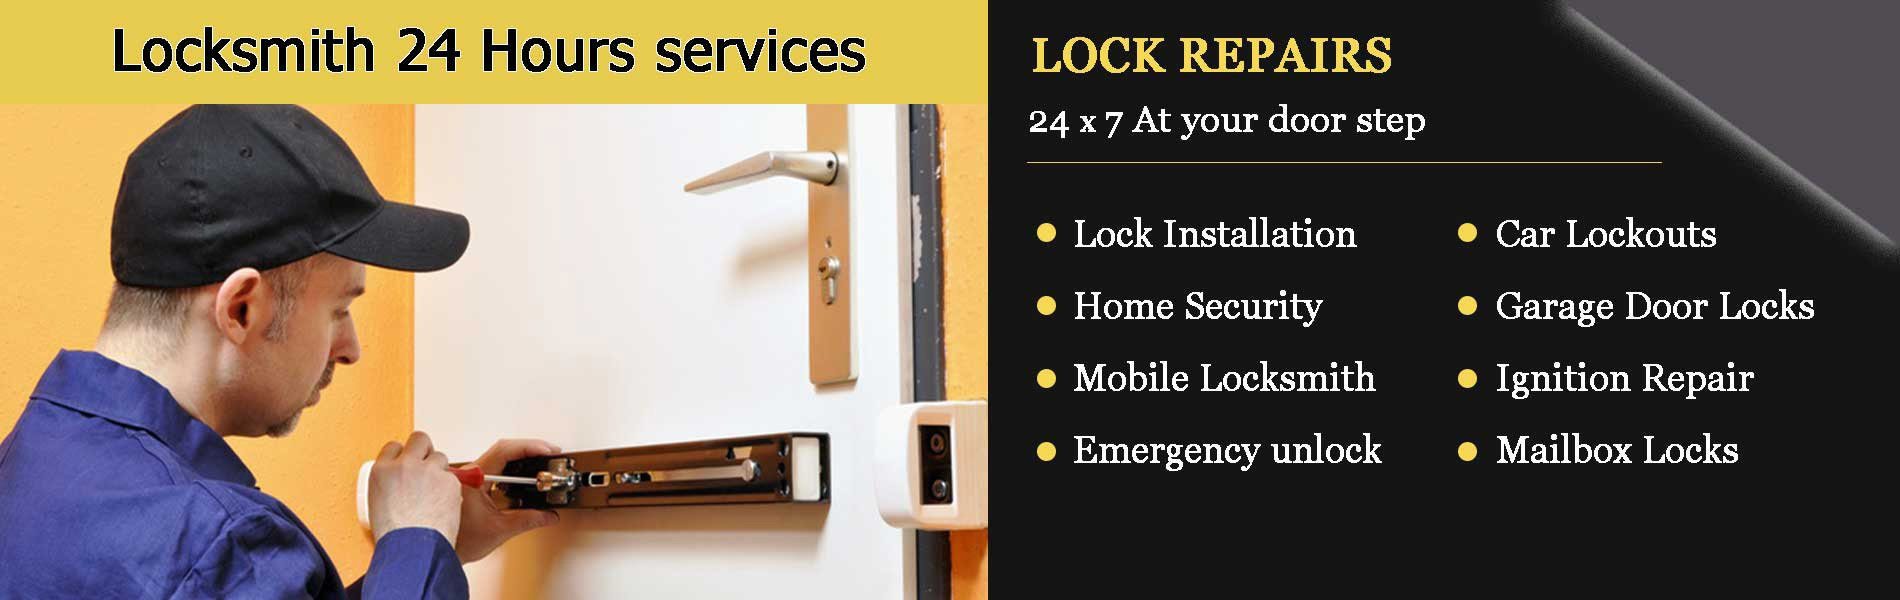 City Locksmith Store Lynn, MA 781-203-8012